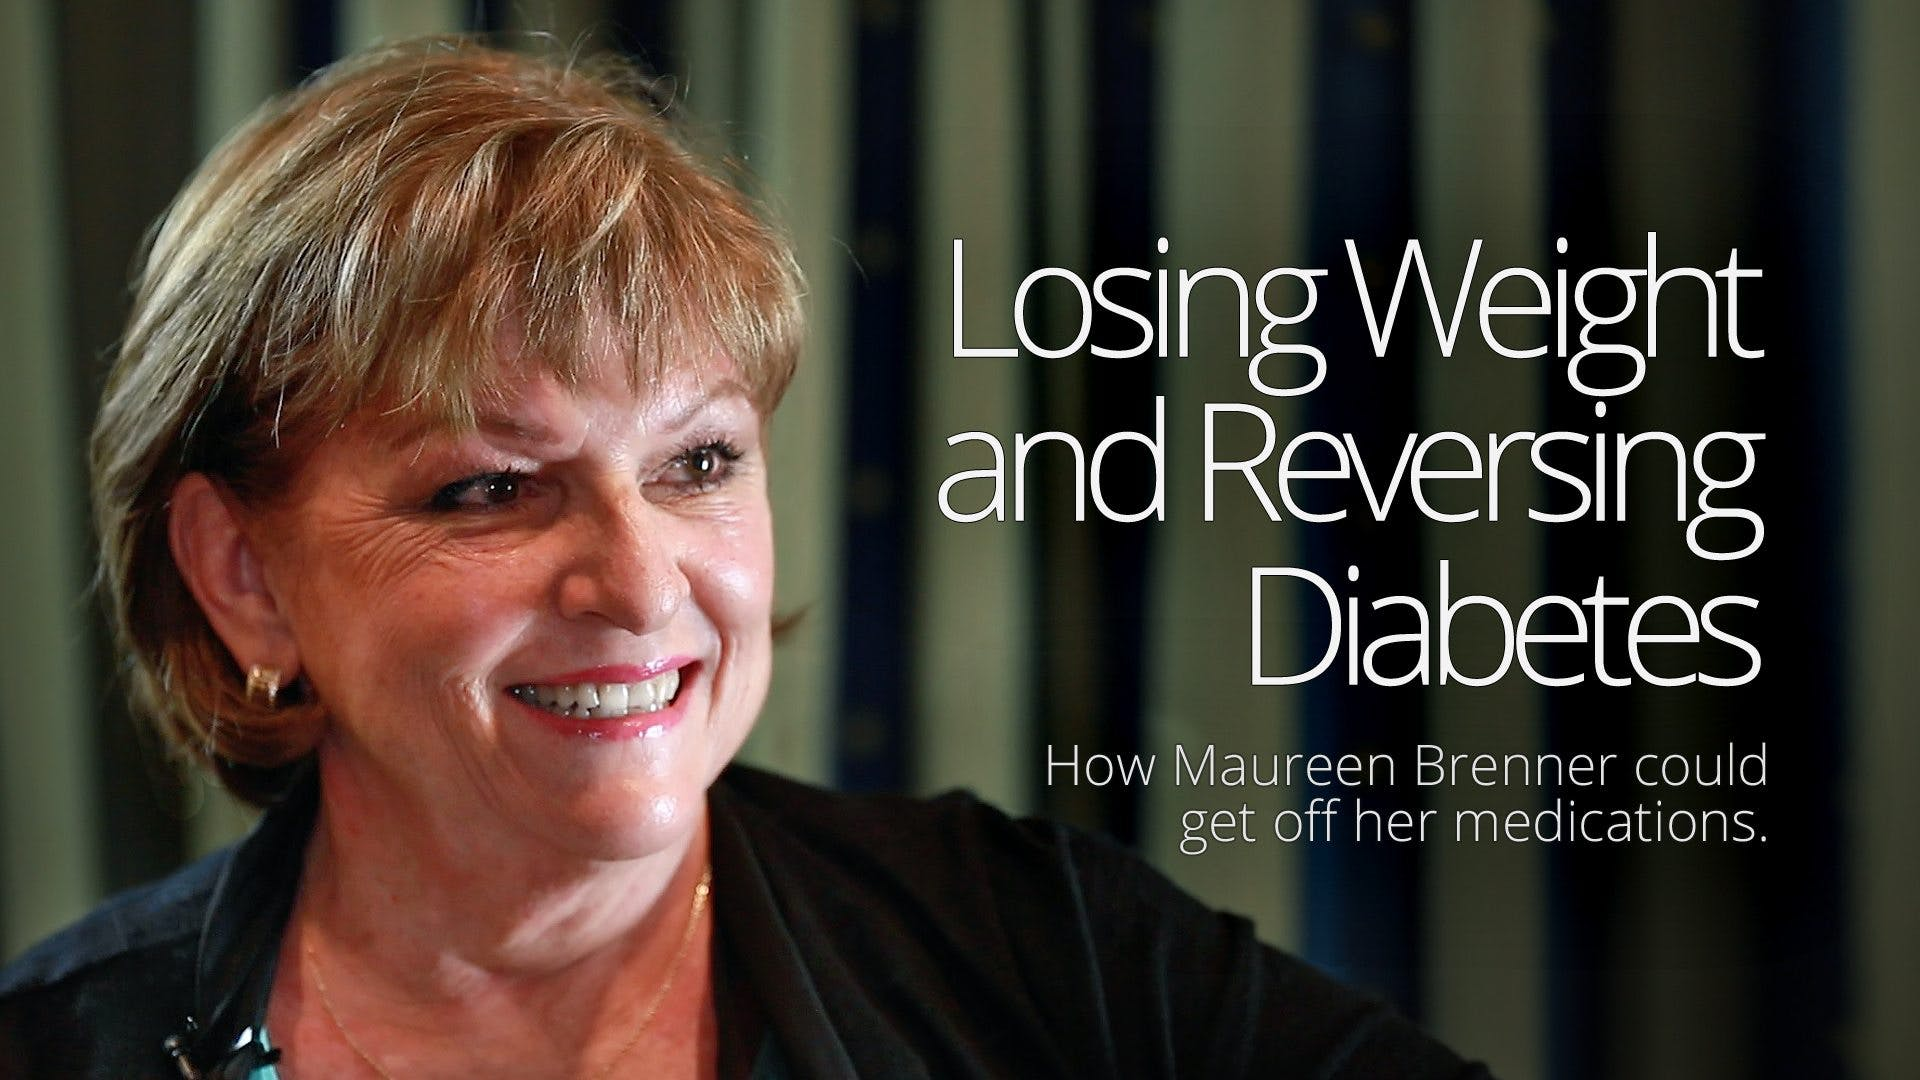 How to Lose Weight and Reverse Diabetes